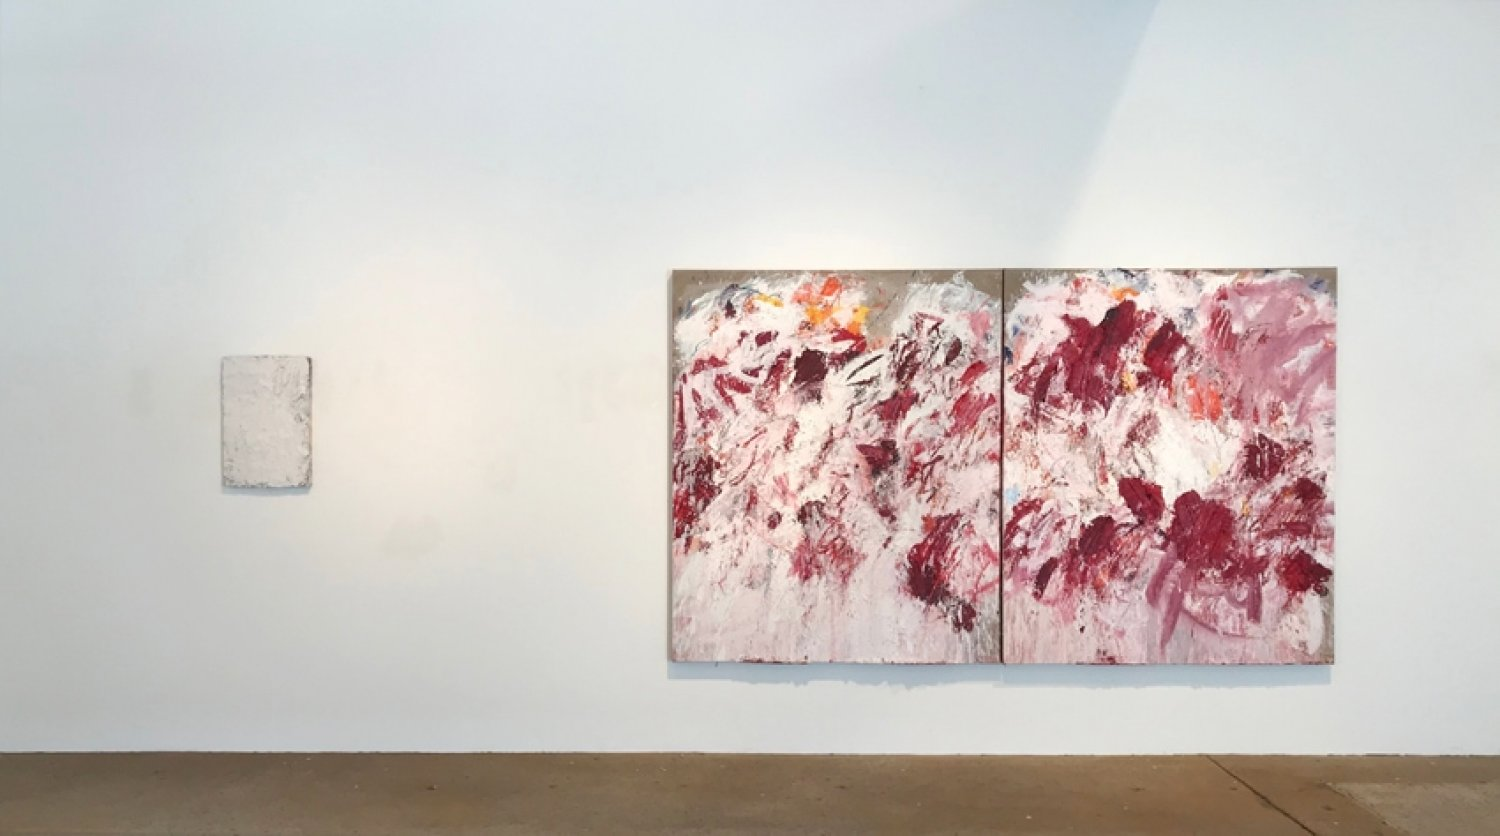 Aida Tomescu, Left: In a carpet made of water, 2017 oil and silver pigment on wood panel, 60 x40 cm. Right: Under the Iron of the Moon I, 2017 oil and silver pigment on canvas, 183 x 306 cm